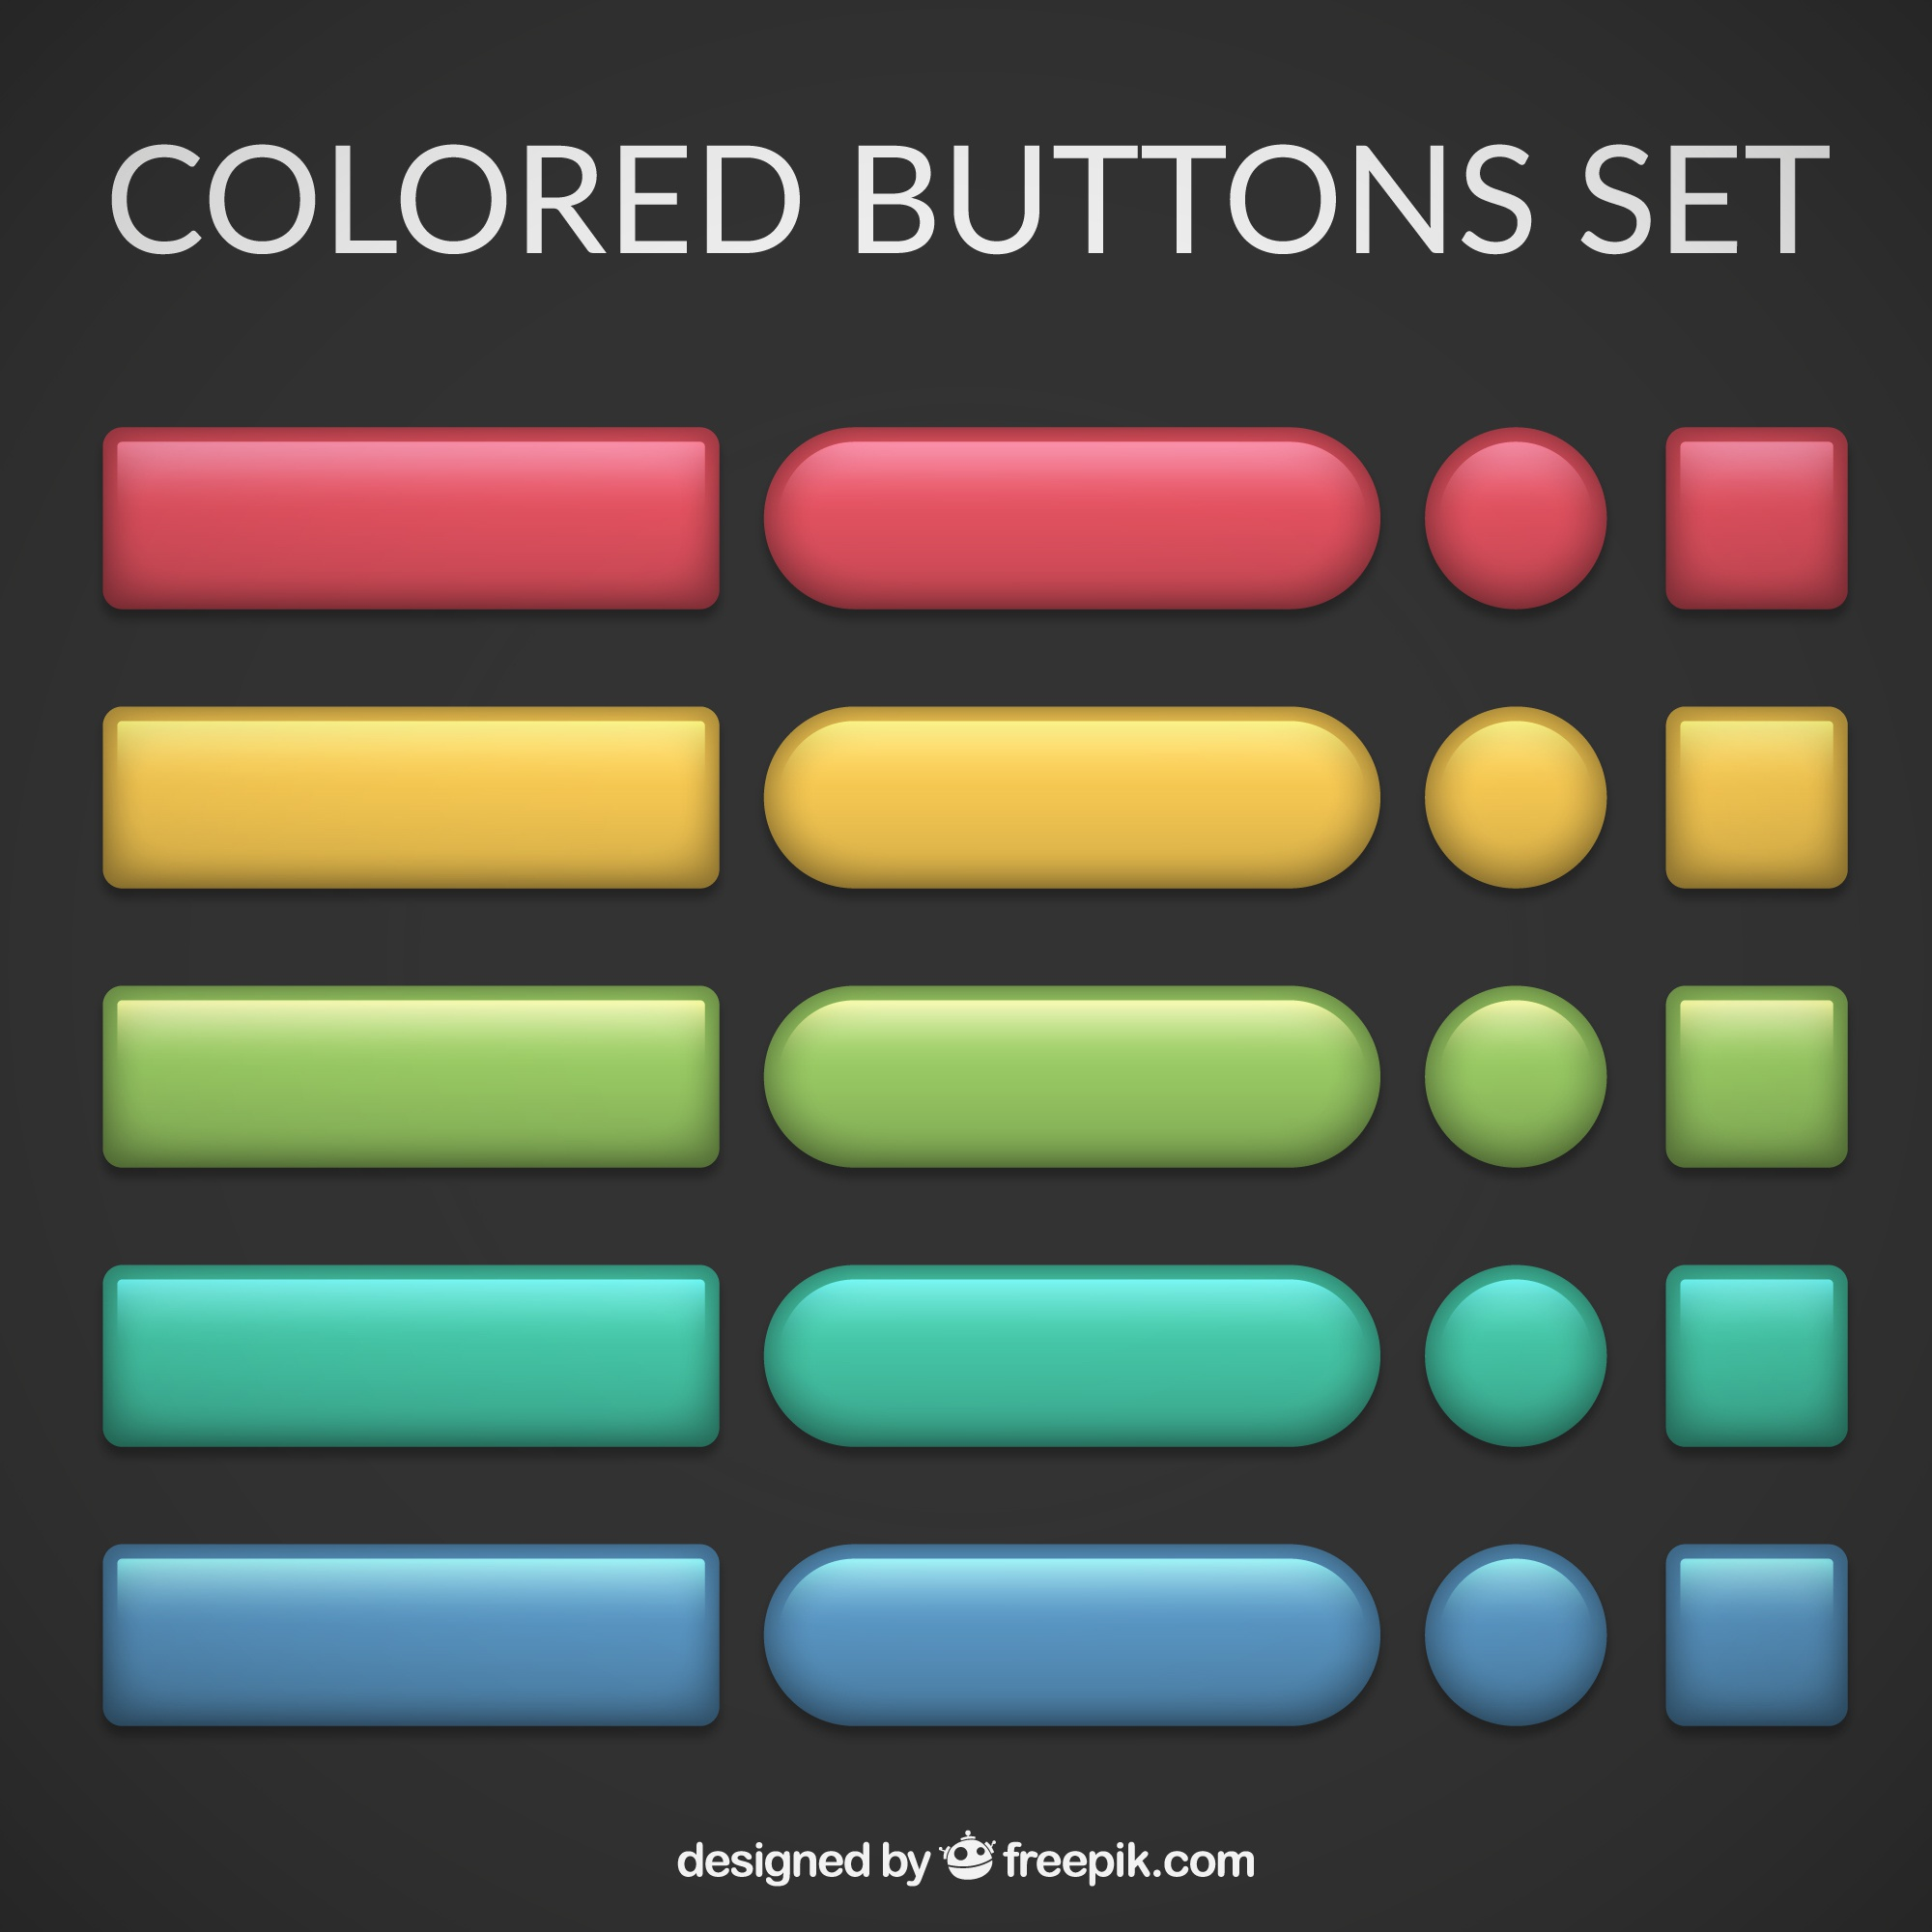 Buttons vectors 2 600 free files in ai eps format for Design a button template free